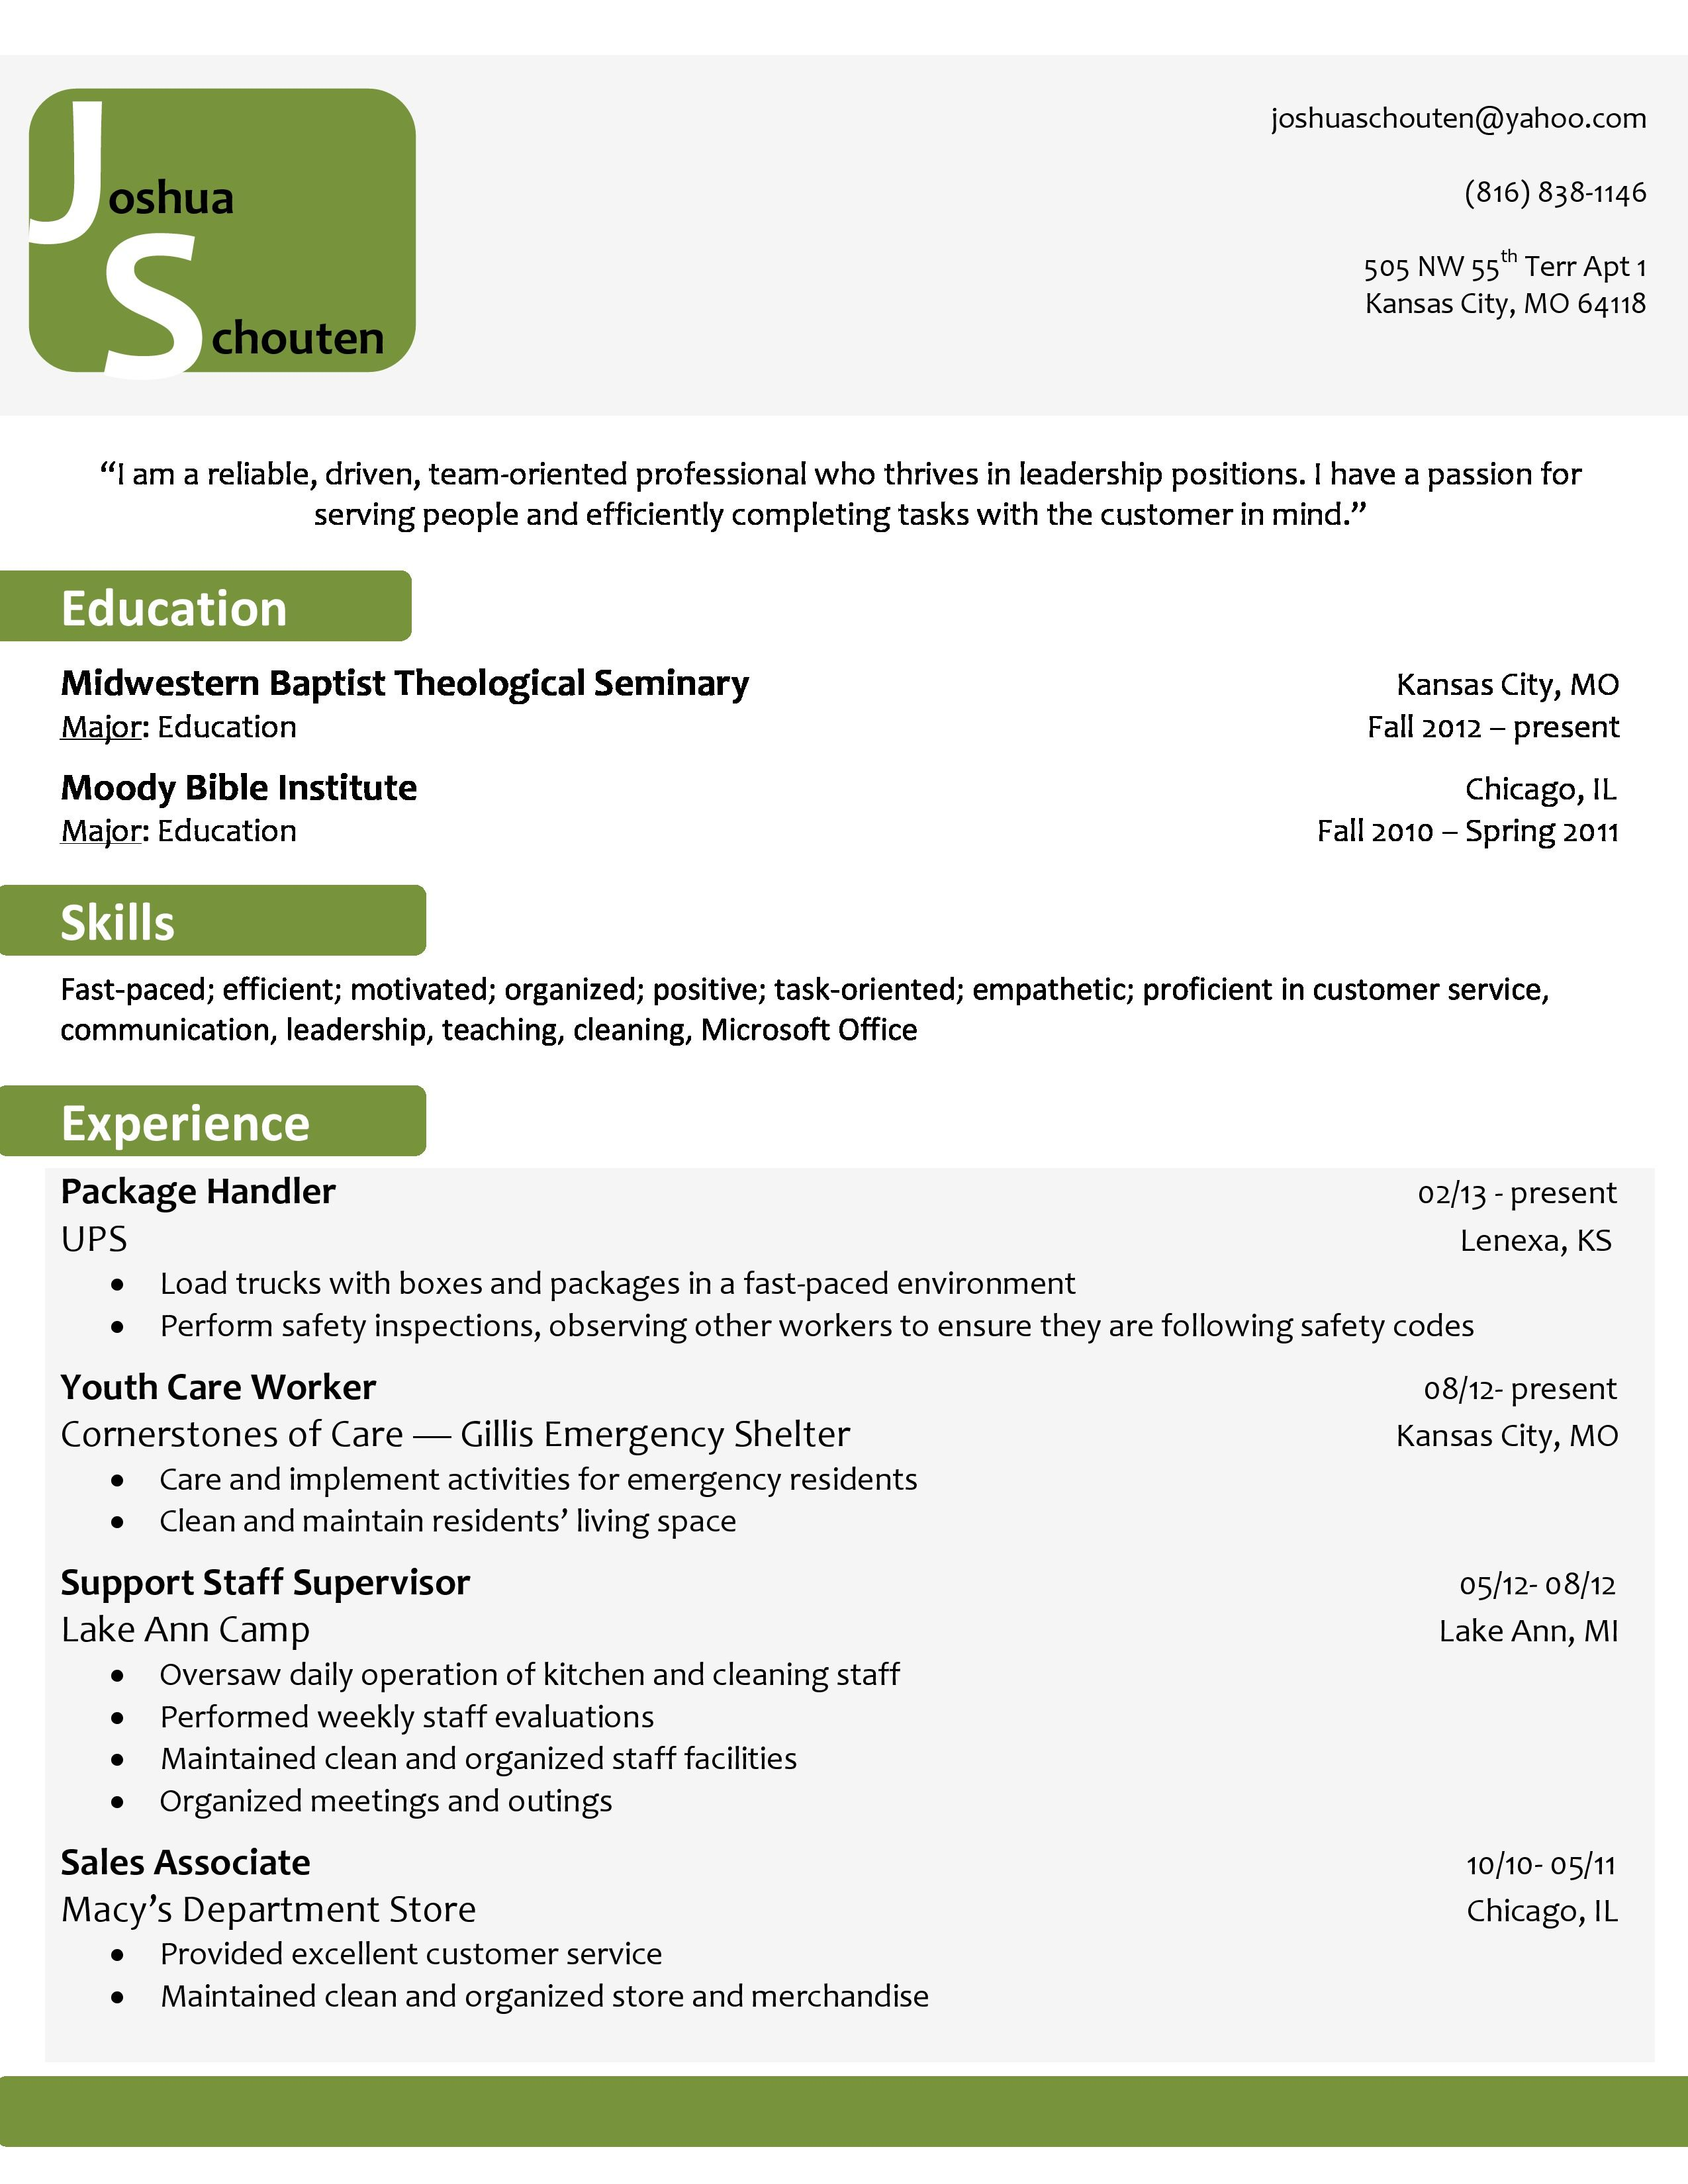 professional green gray and white resume buy the template for just 15 - Buy Resume Templates